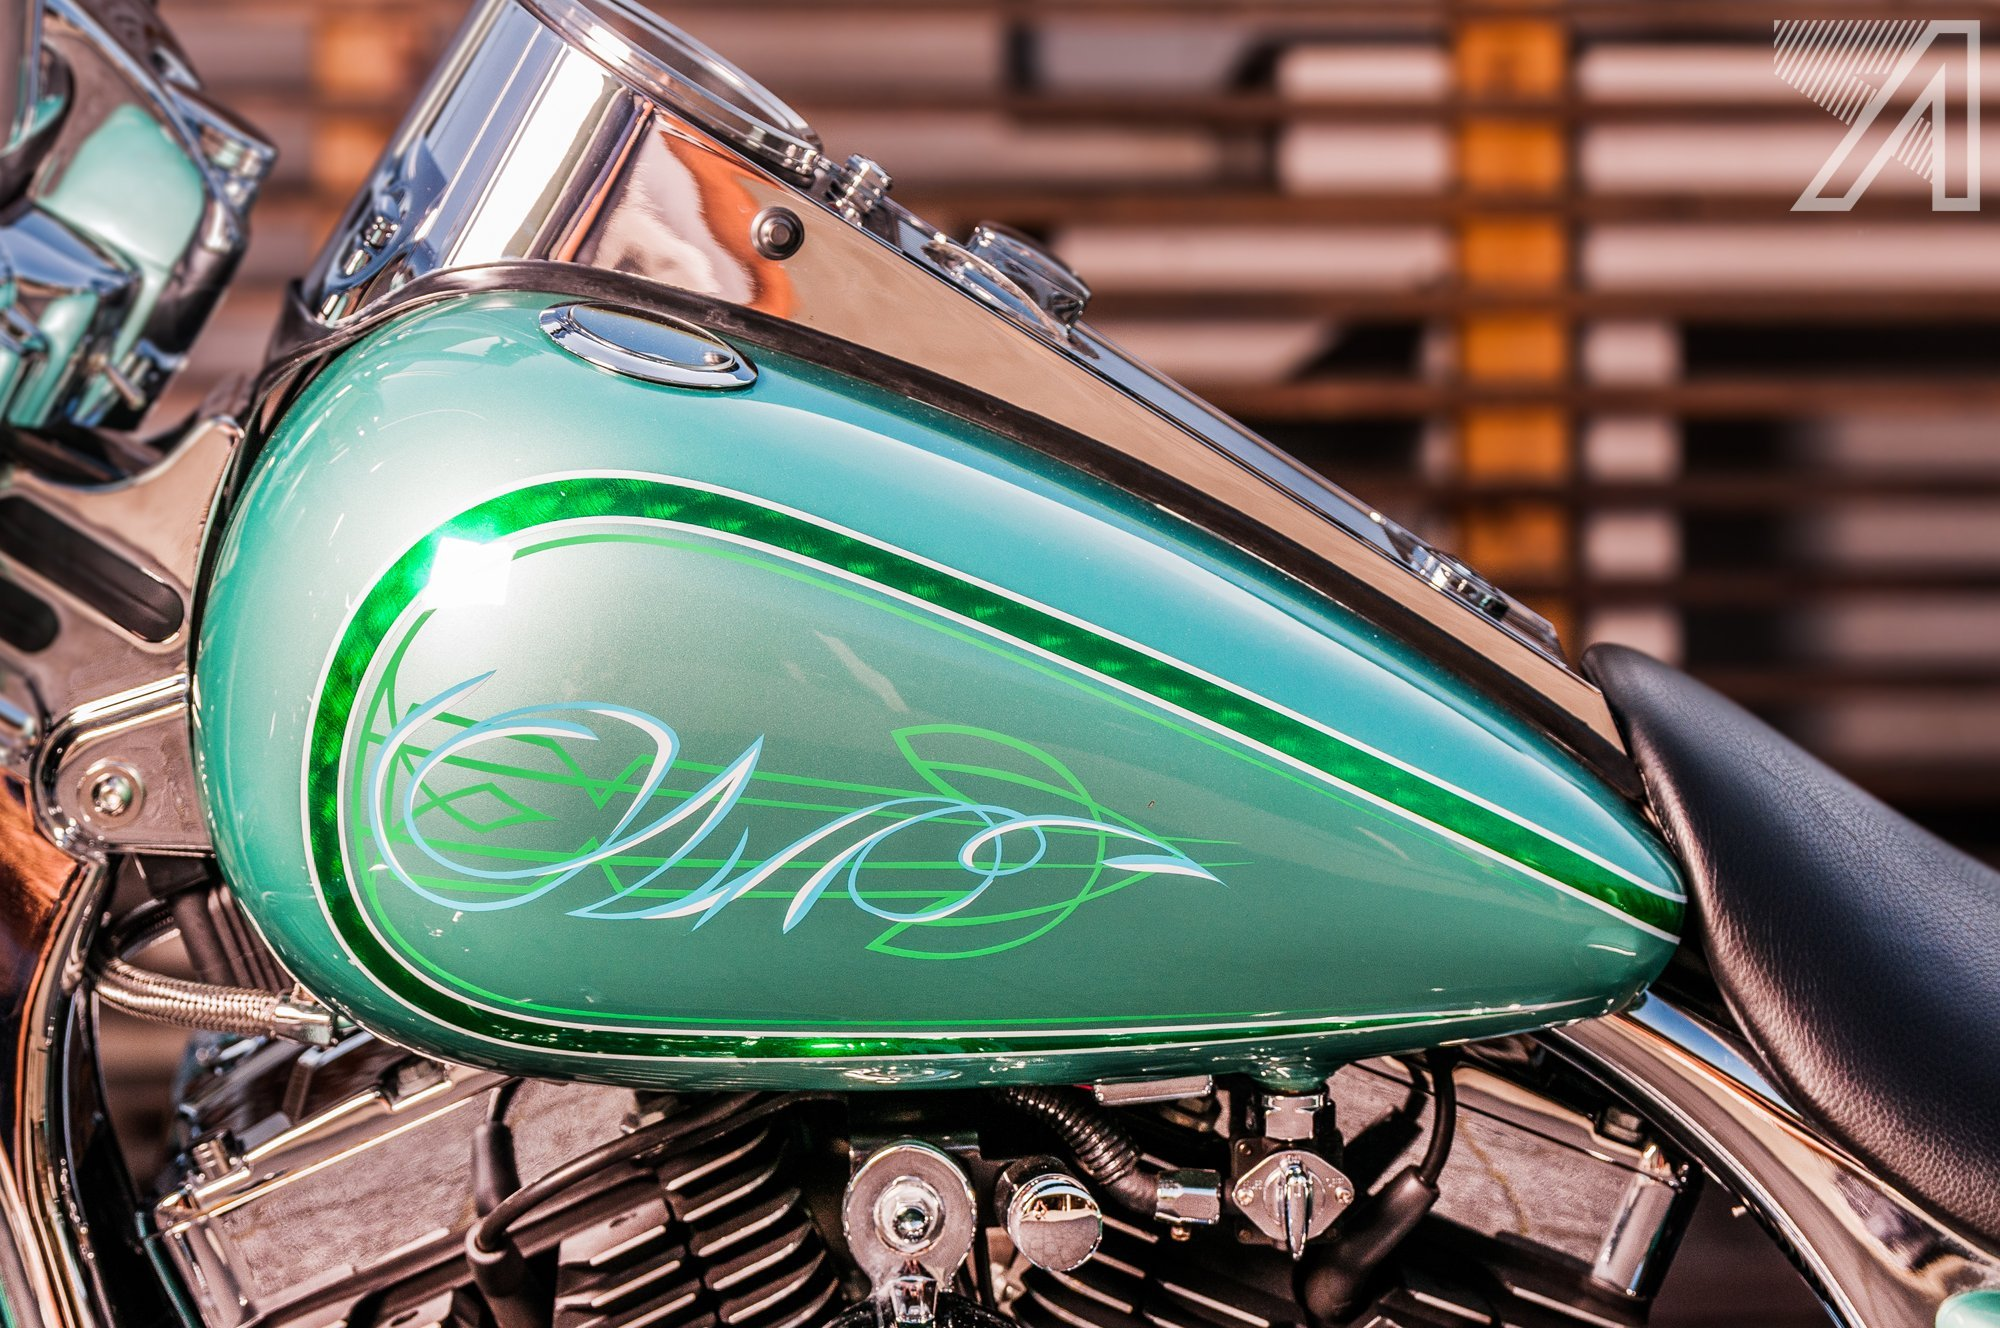 2016-10::1476001607-h-d-road-king-green-candy-leaf-8.jpg